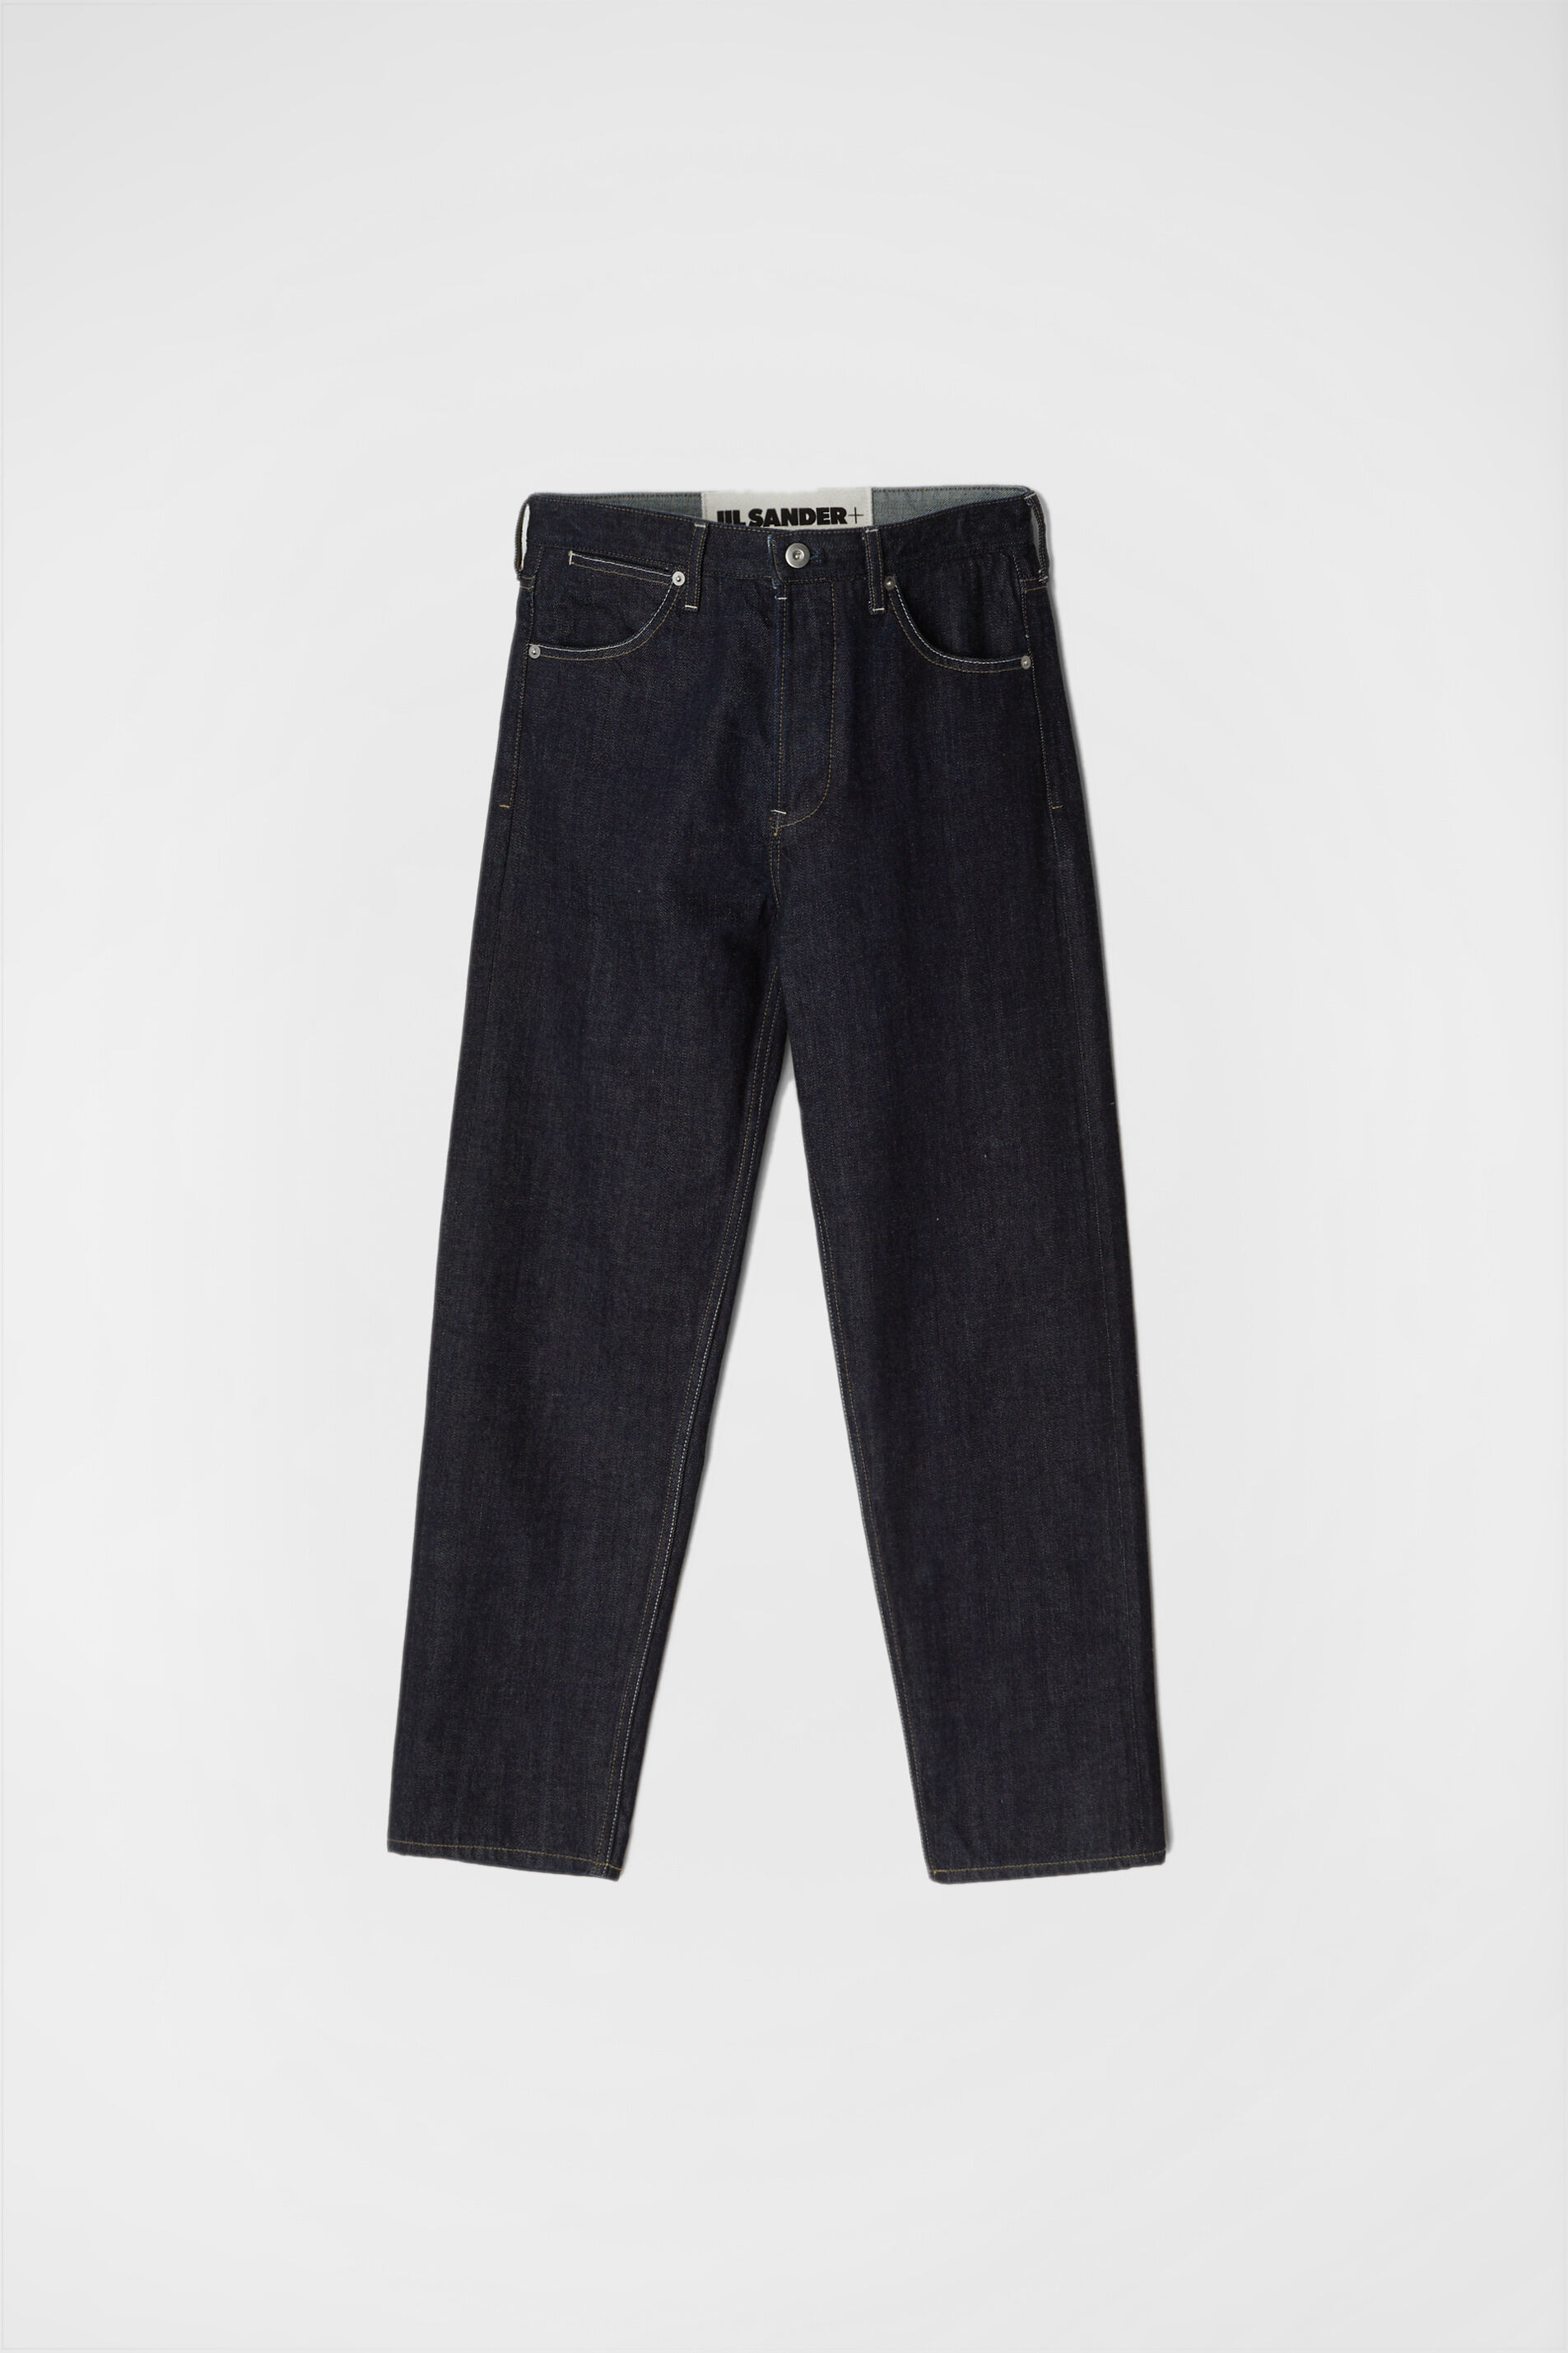 Standard Jeans, dark blue, large